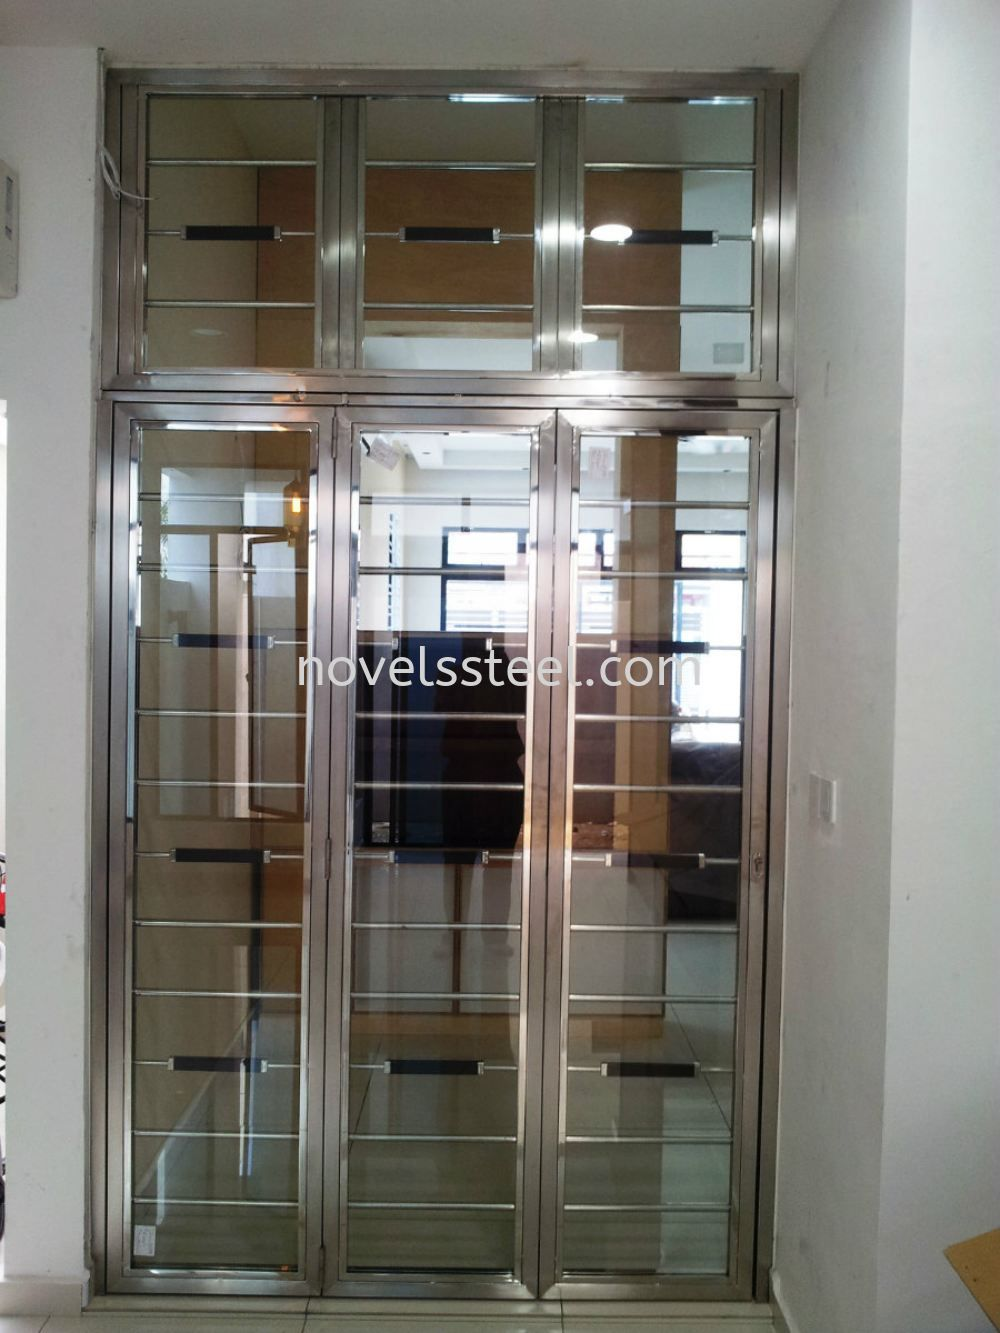 Stainless Steel Sliding door 014 Stainless Steel Sliding